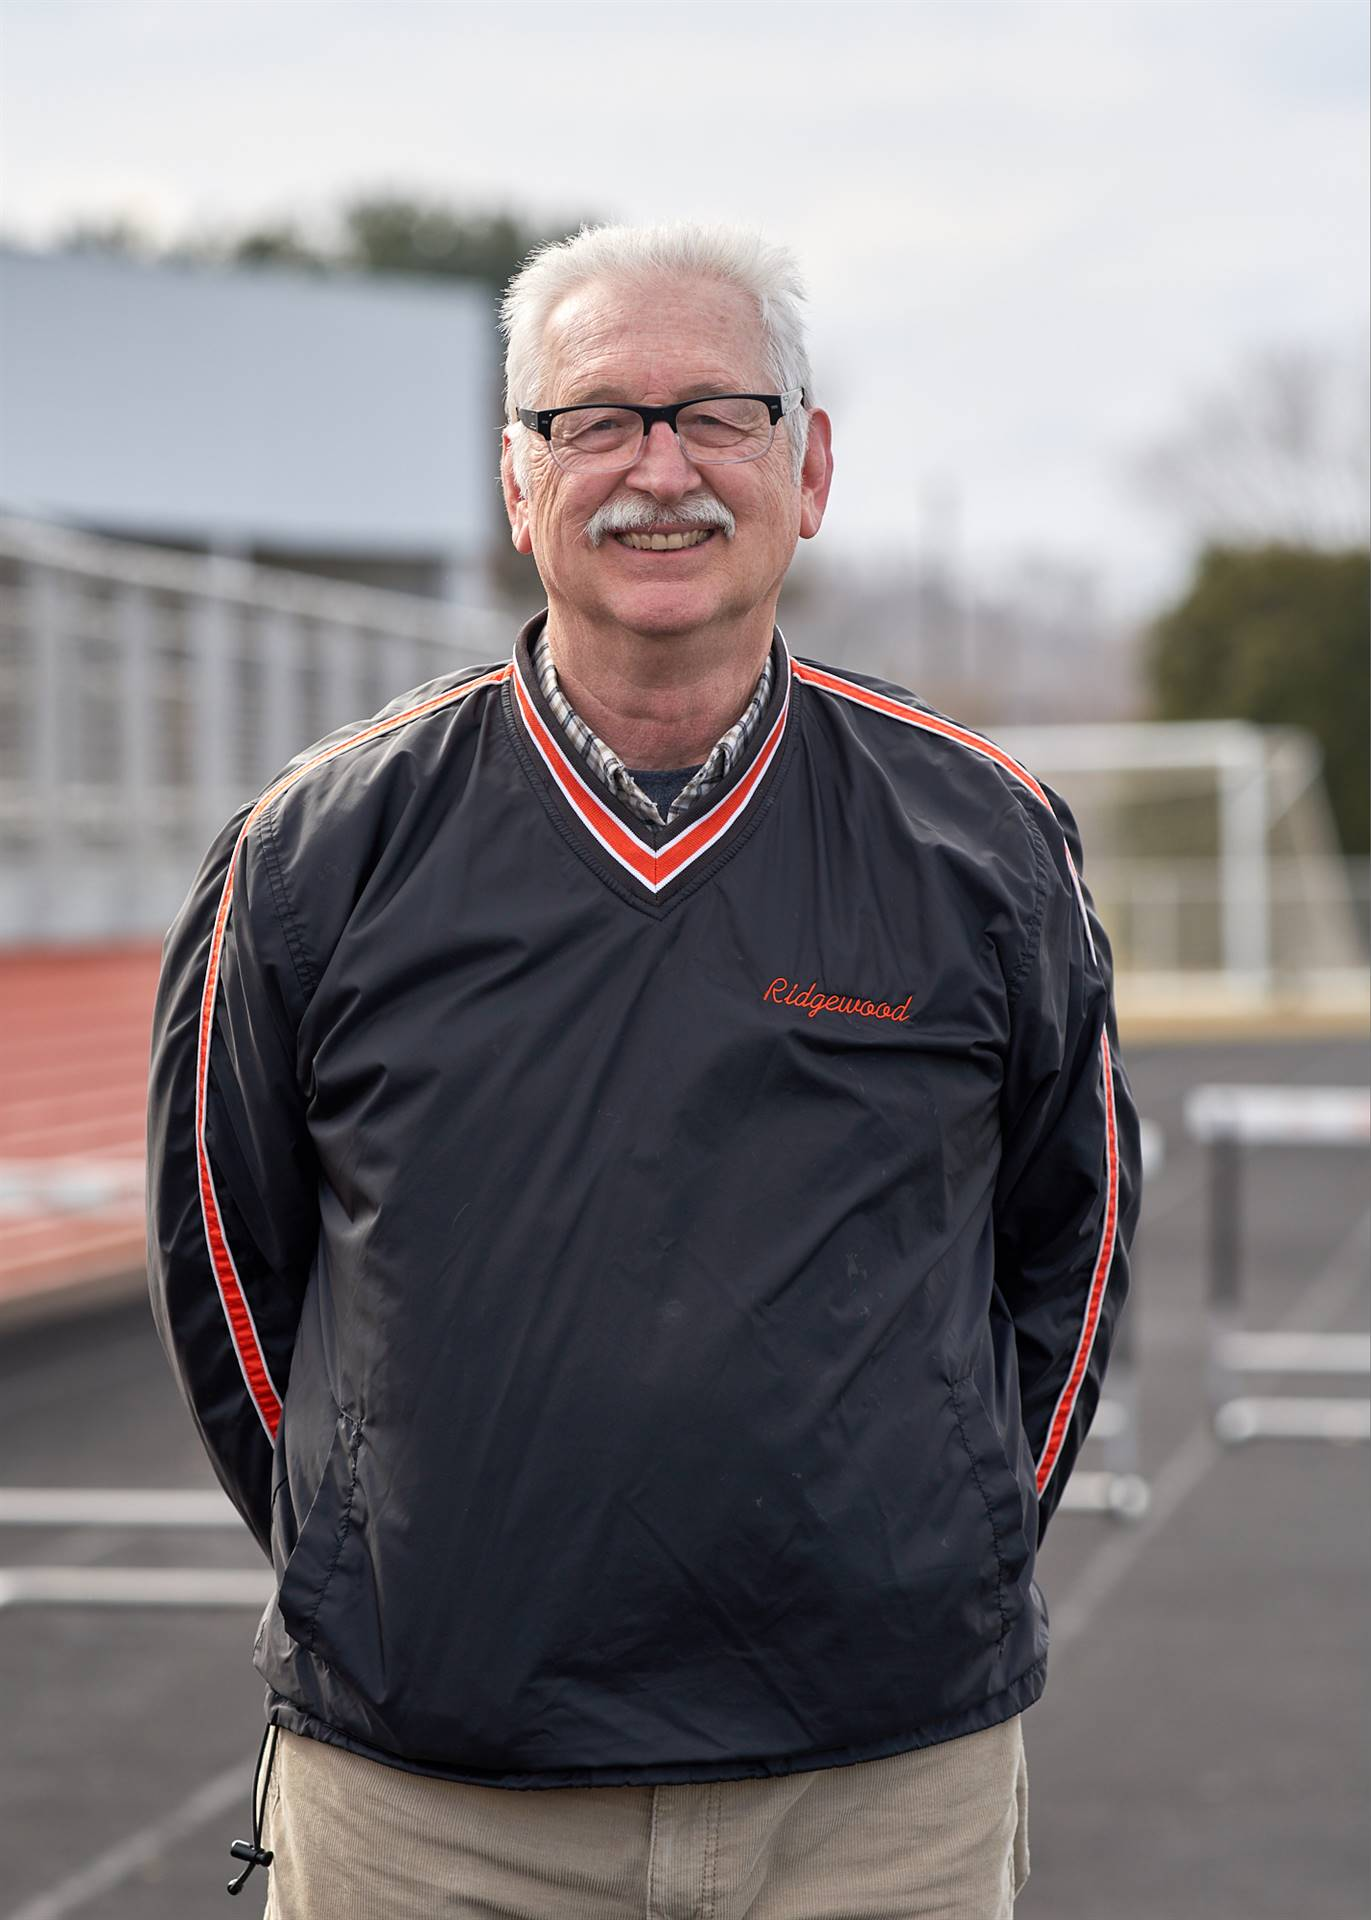 2019 girls track coach